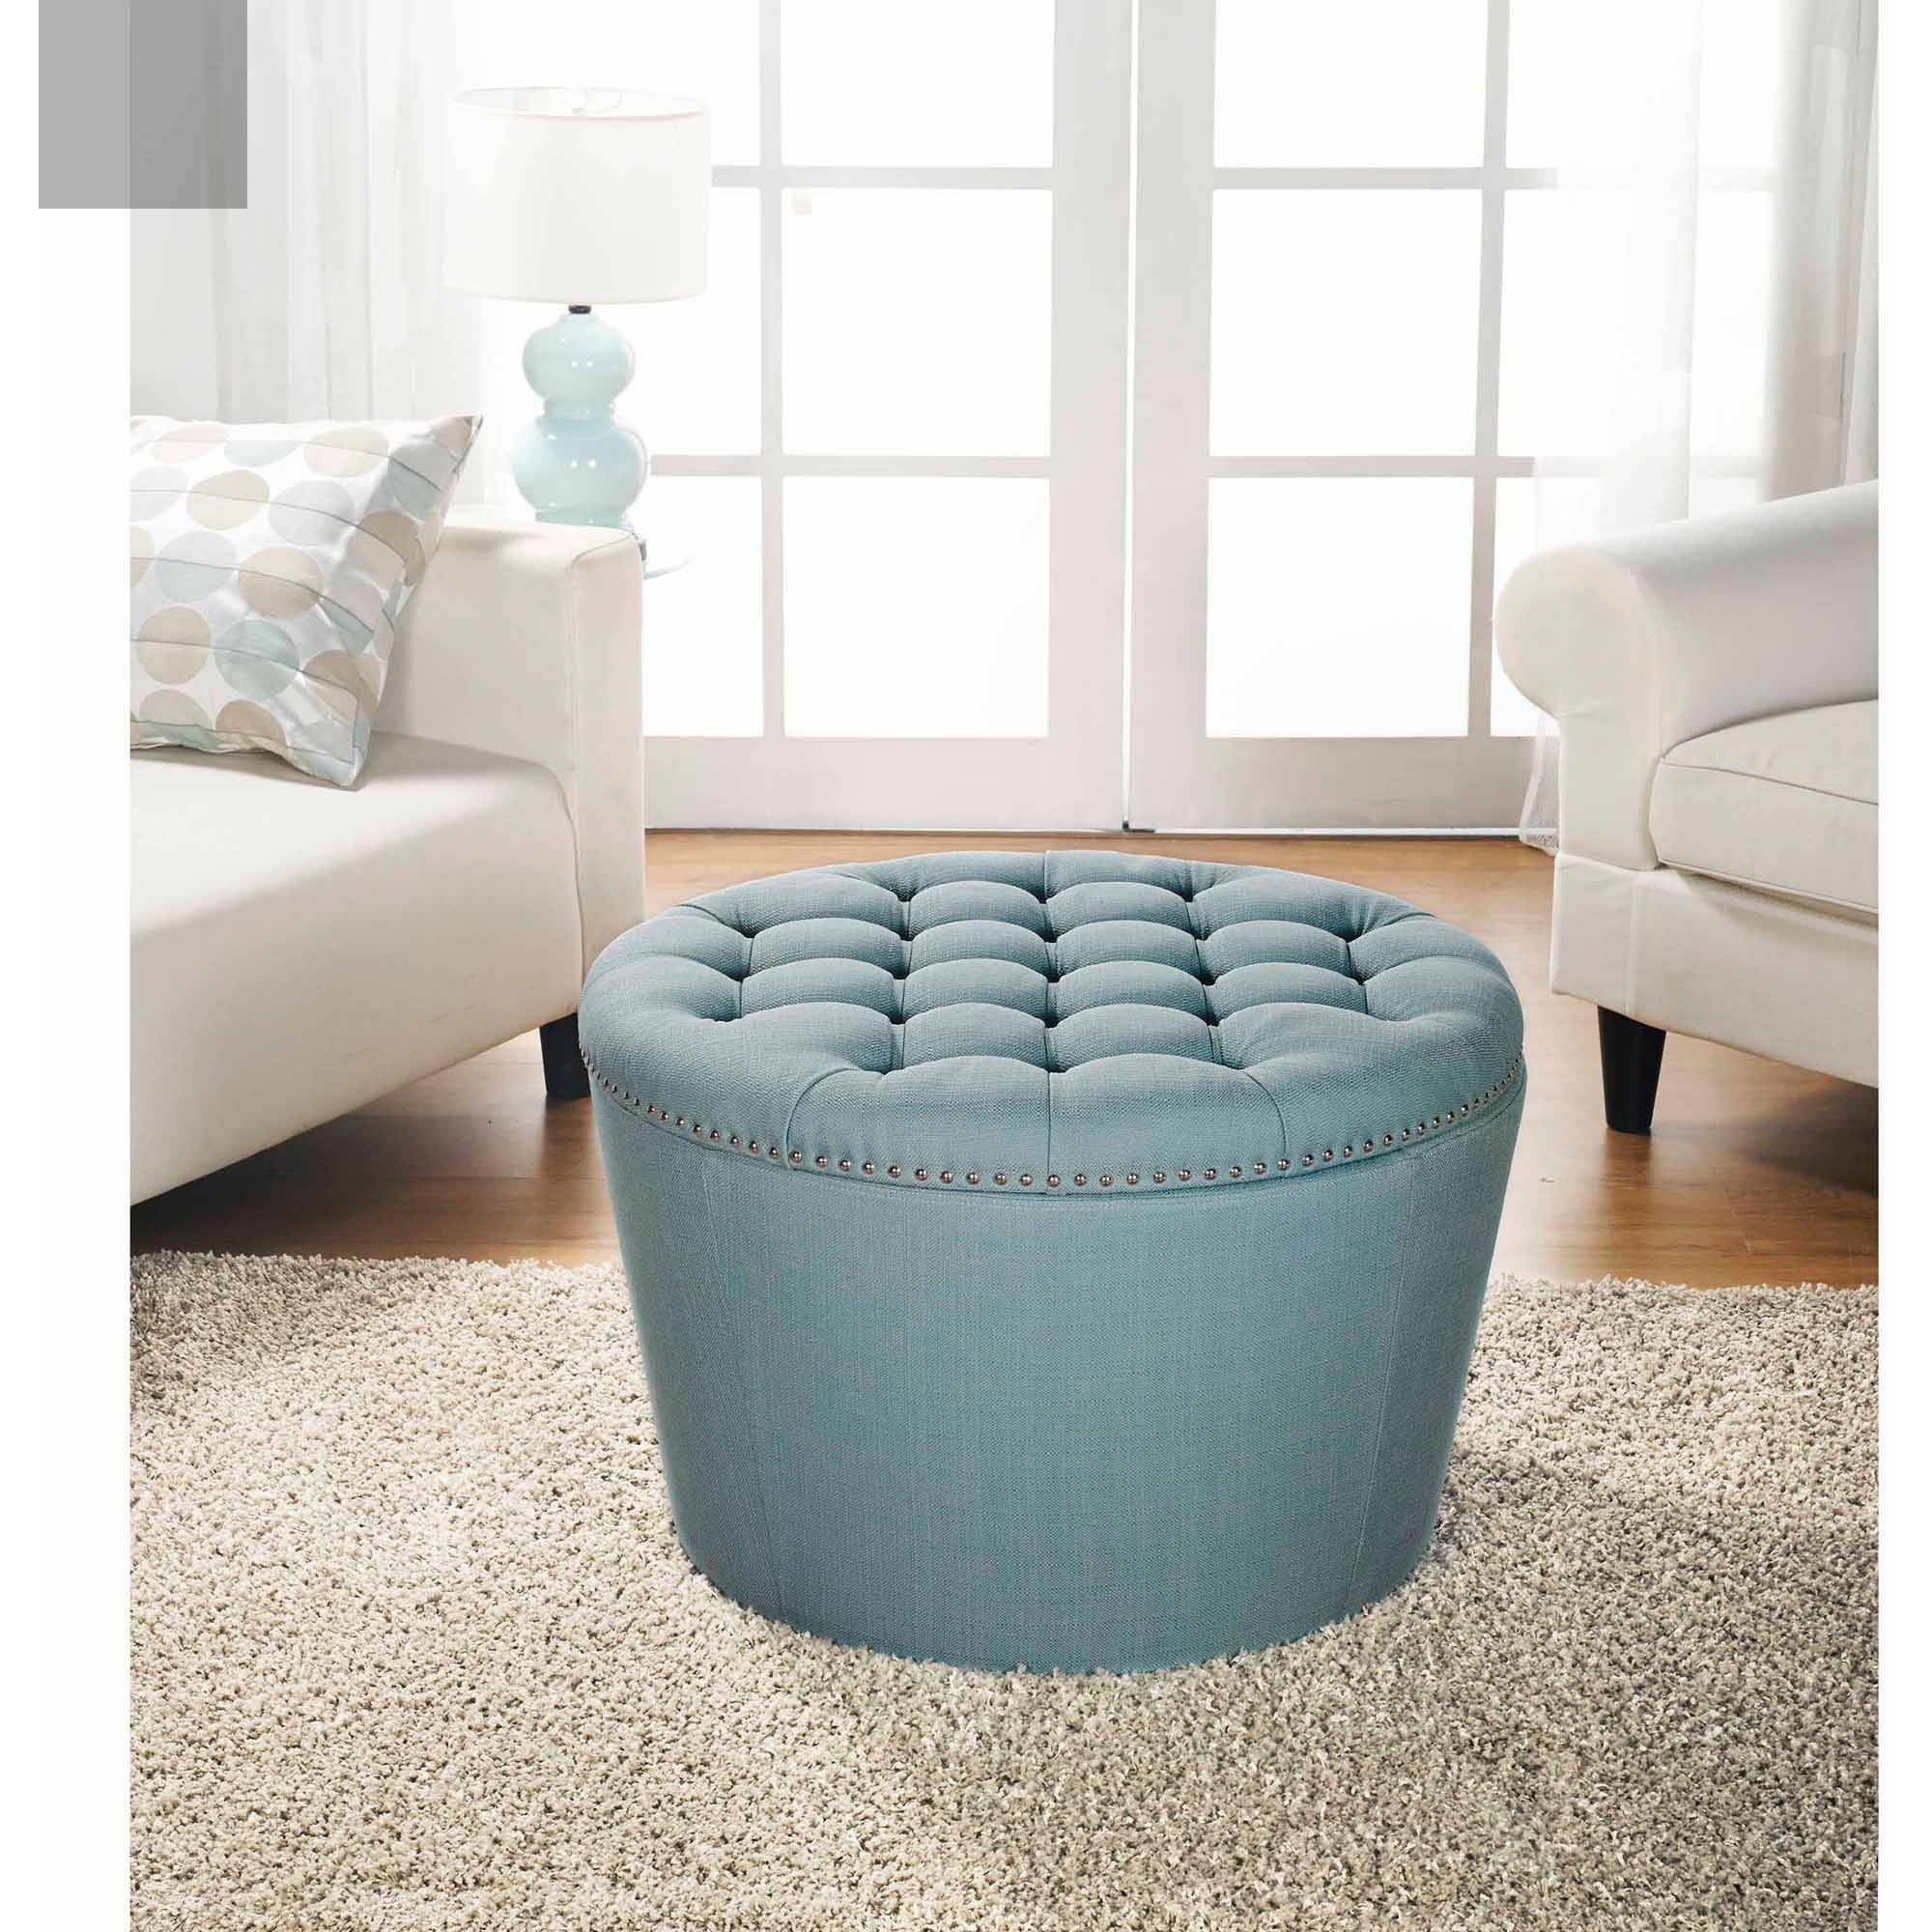 better homes and gardens round tufted storage ottoman with nailheads teal walmart com